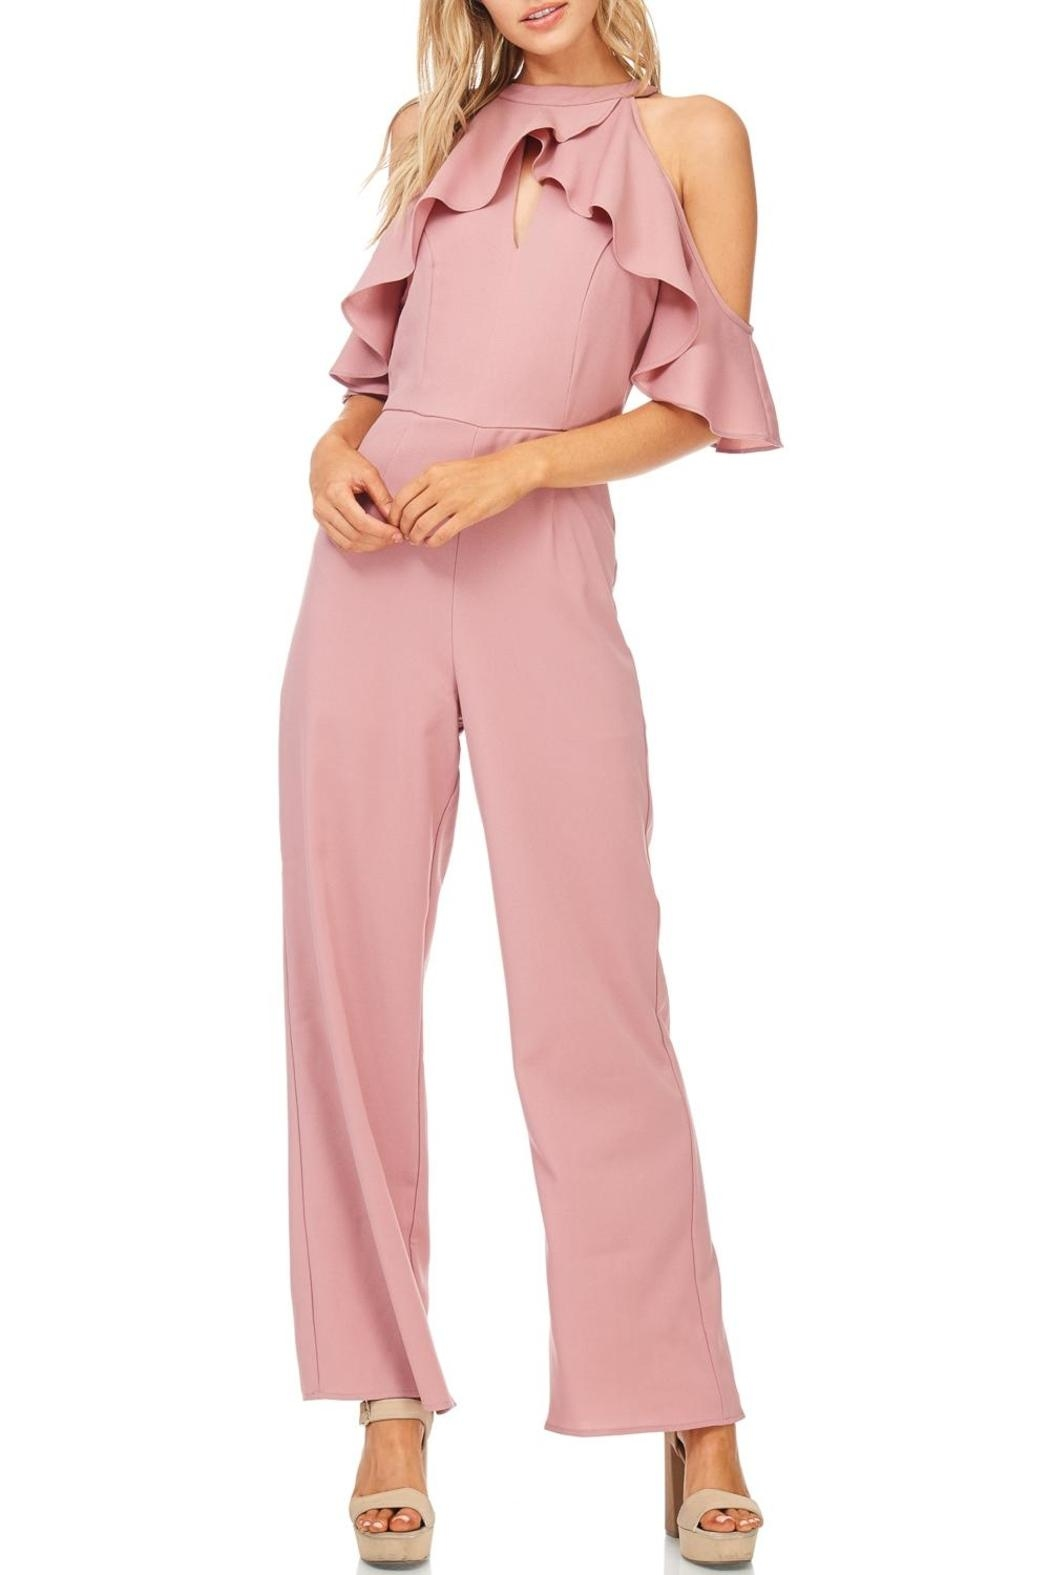 She + Sky Dusty Rose Jumpsuit - Main Image